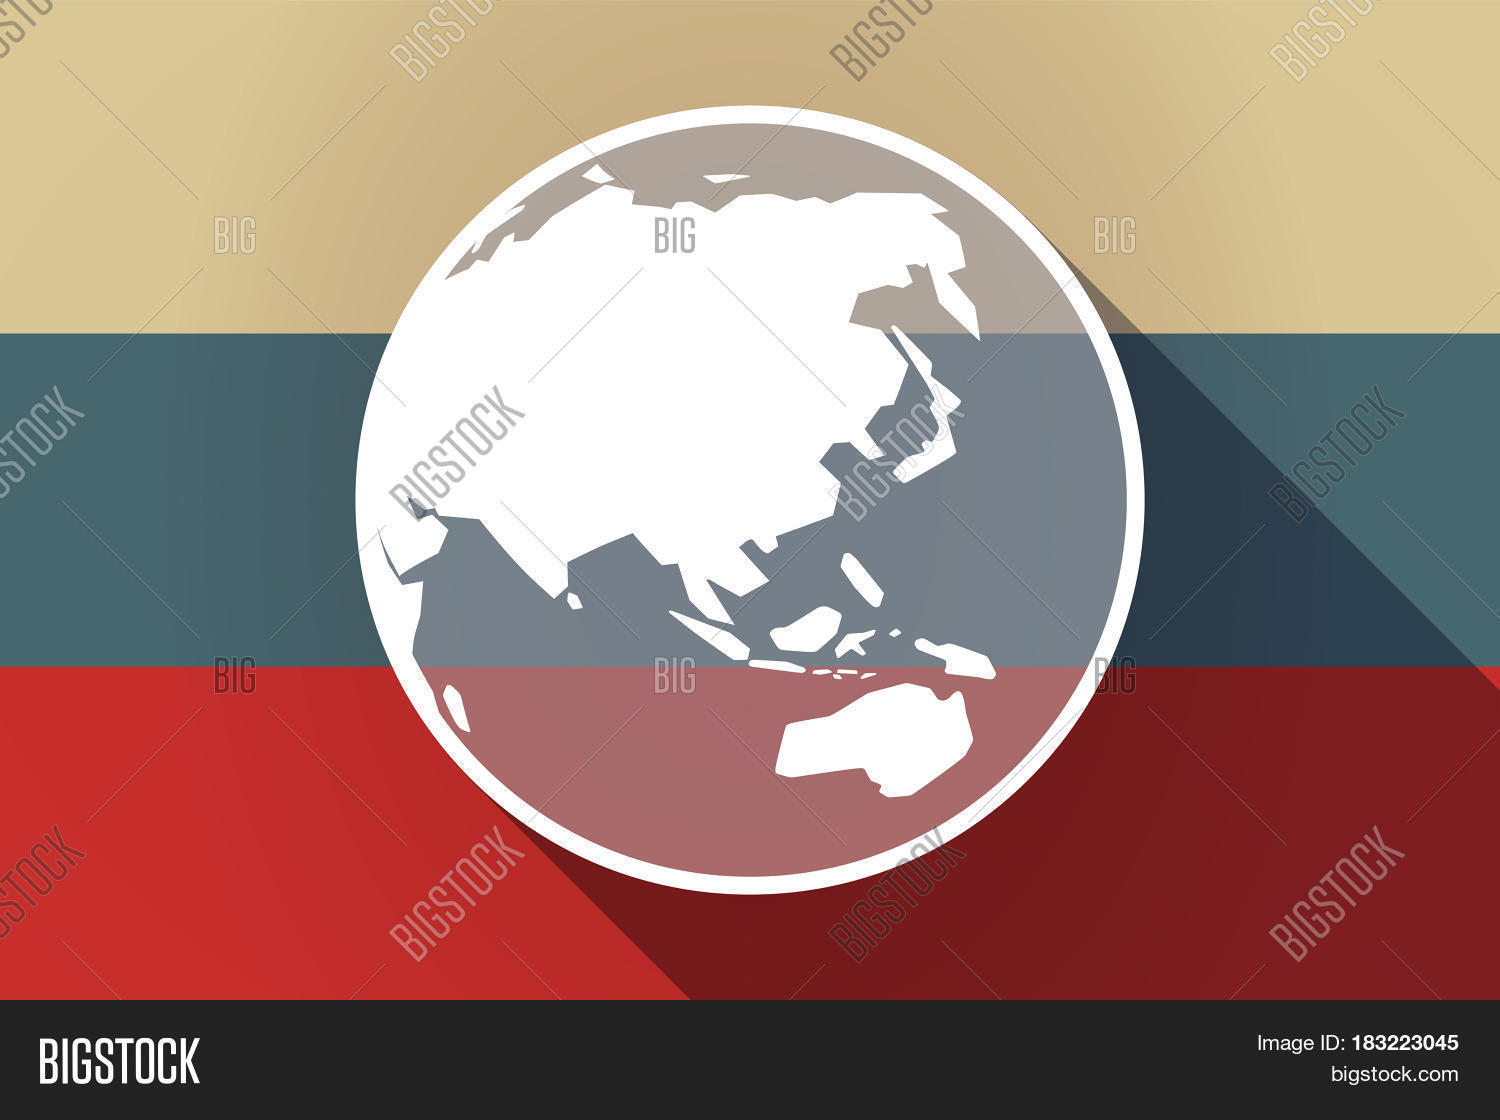 Ong shadow russia flag asia vector photo bigstock ong shadow russia flag with an asia pacific world globe map gumiabroncs Images